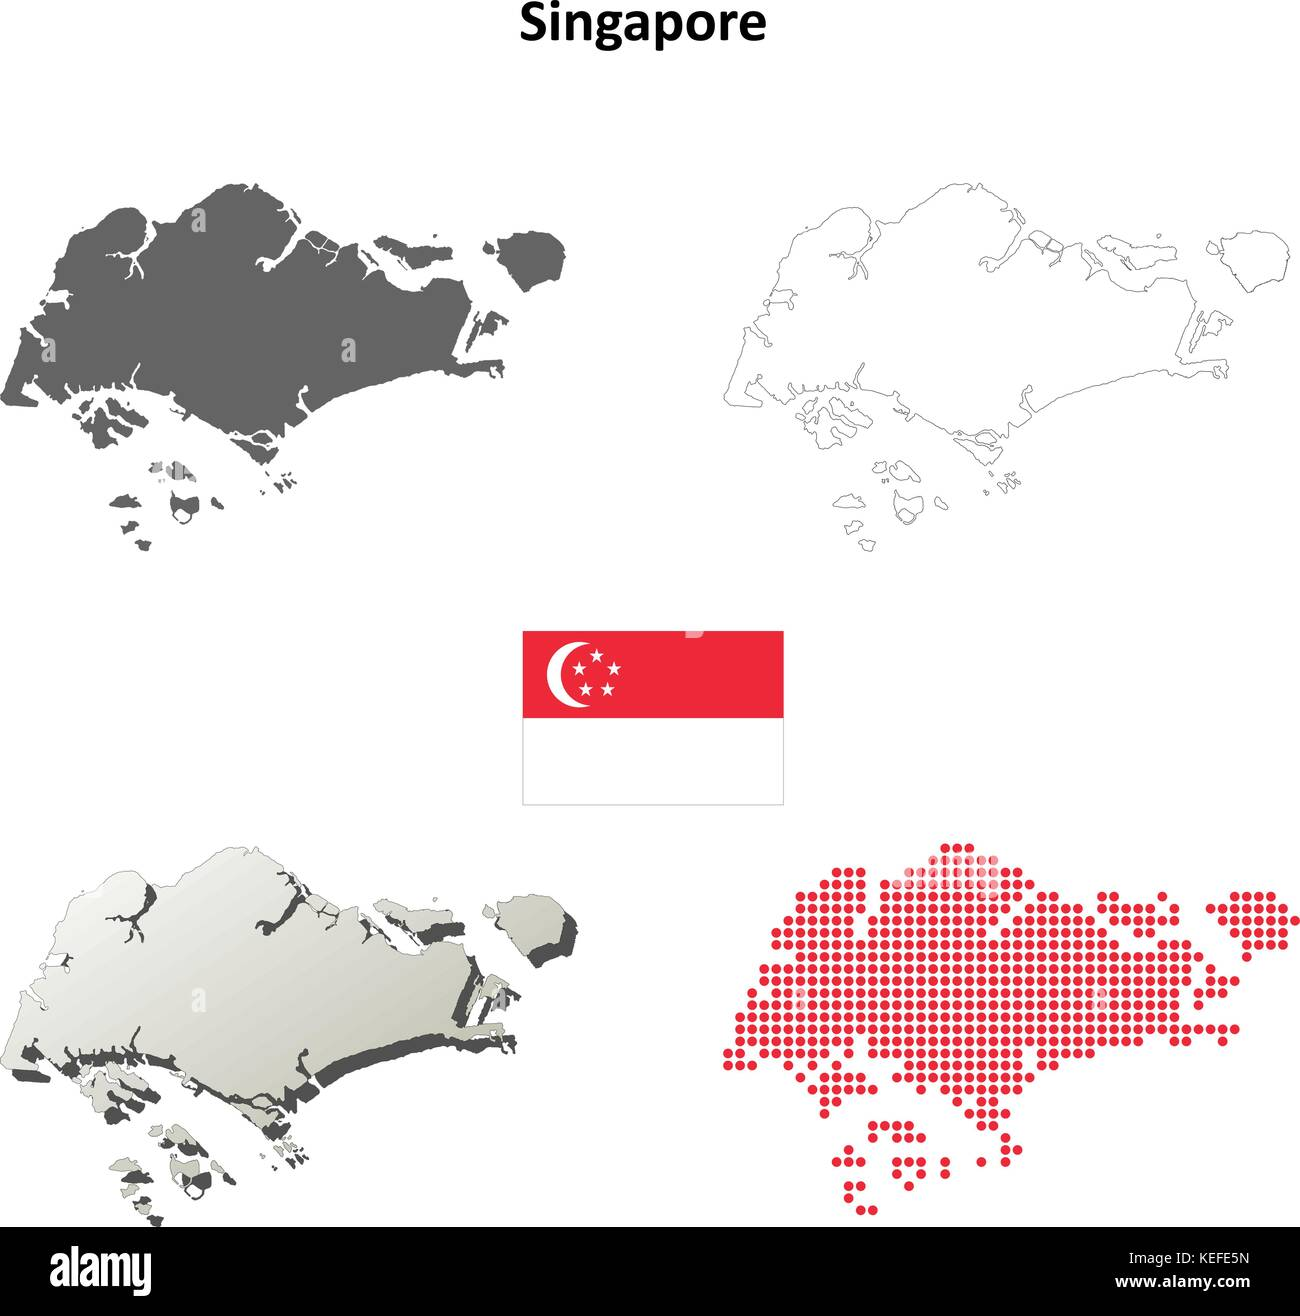 Singapore Outline Map Set Stock Vector Art Illustration Vector - Singapore map vector